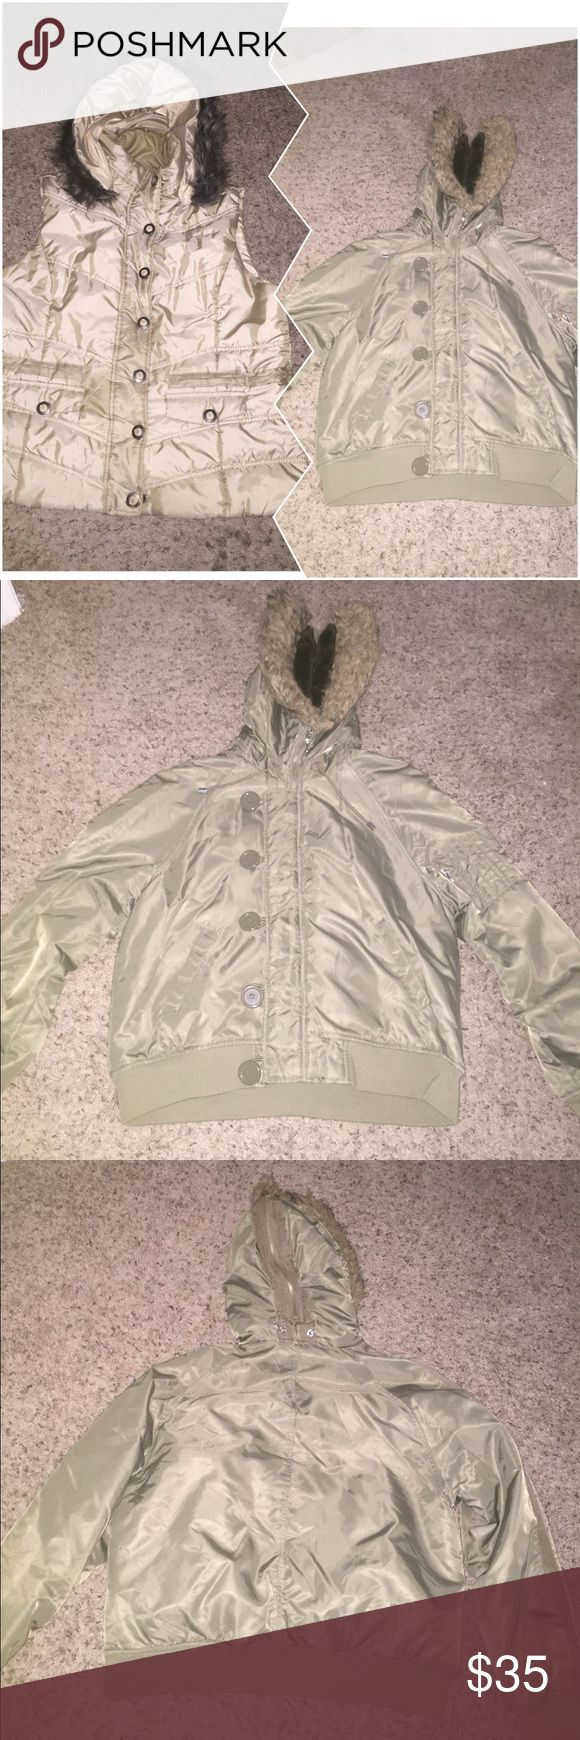 """Fur Bundle! Vest with vegan fur hood has only been worn once. Hood is detachable. It zips and buttons. Has 2 functioning pockets. 24"""" long & 24"""" wide buttoned up. Olive green jacket has a vegan fir hood also. Spandex waistband and armbands. 3 functioning pockets. Buttons and zips. 24"""" long & 23"""" wide. Both can fit L/XL and are in like new condition. Jackets & Coats Puffers"""